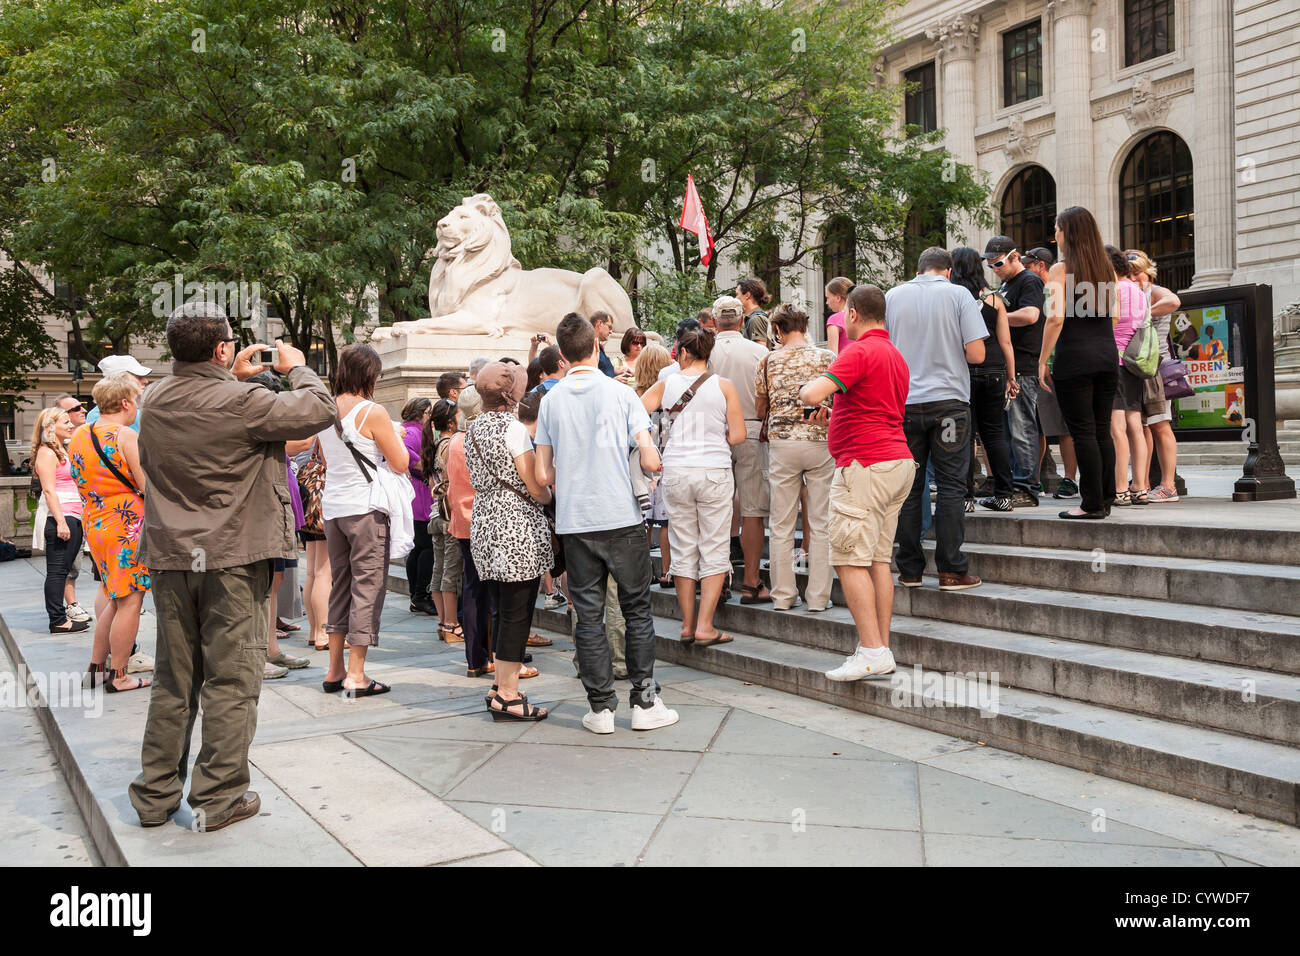 Tour Group on the Steps of the New York Public Library, NYC